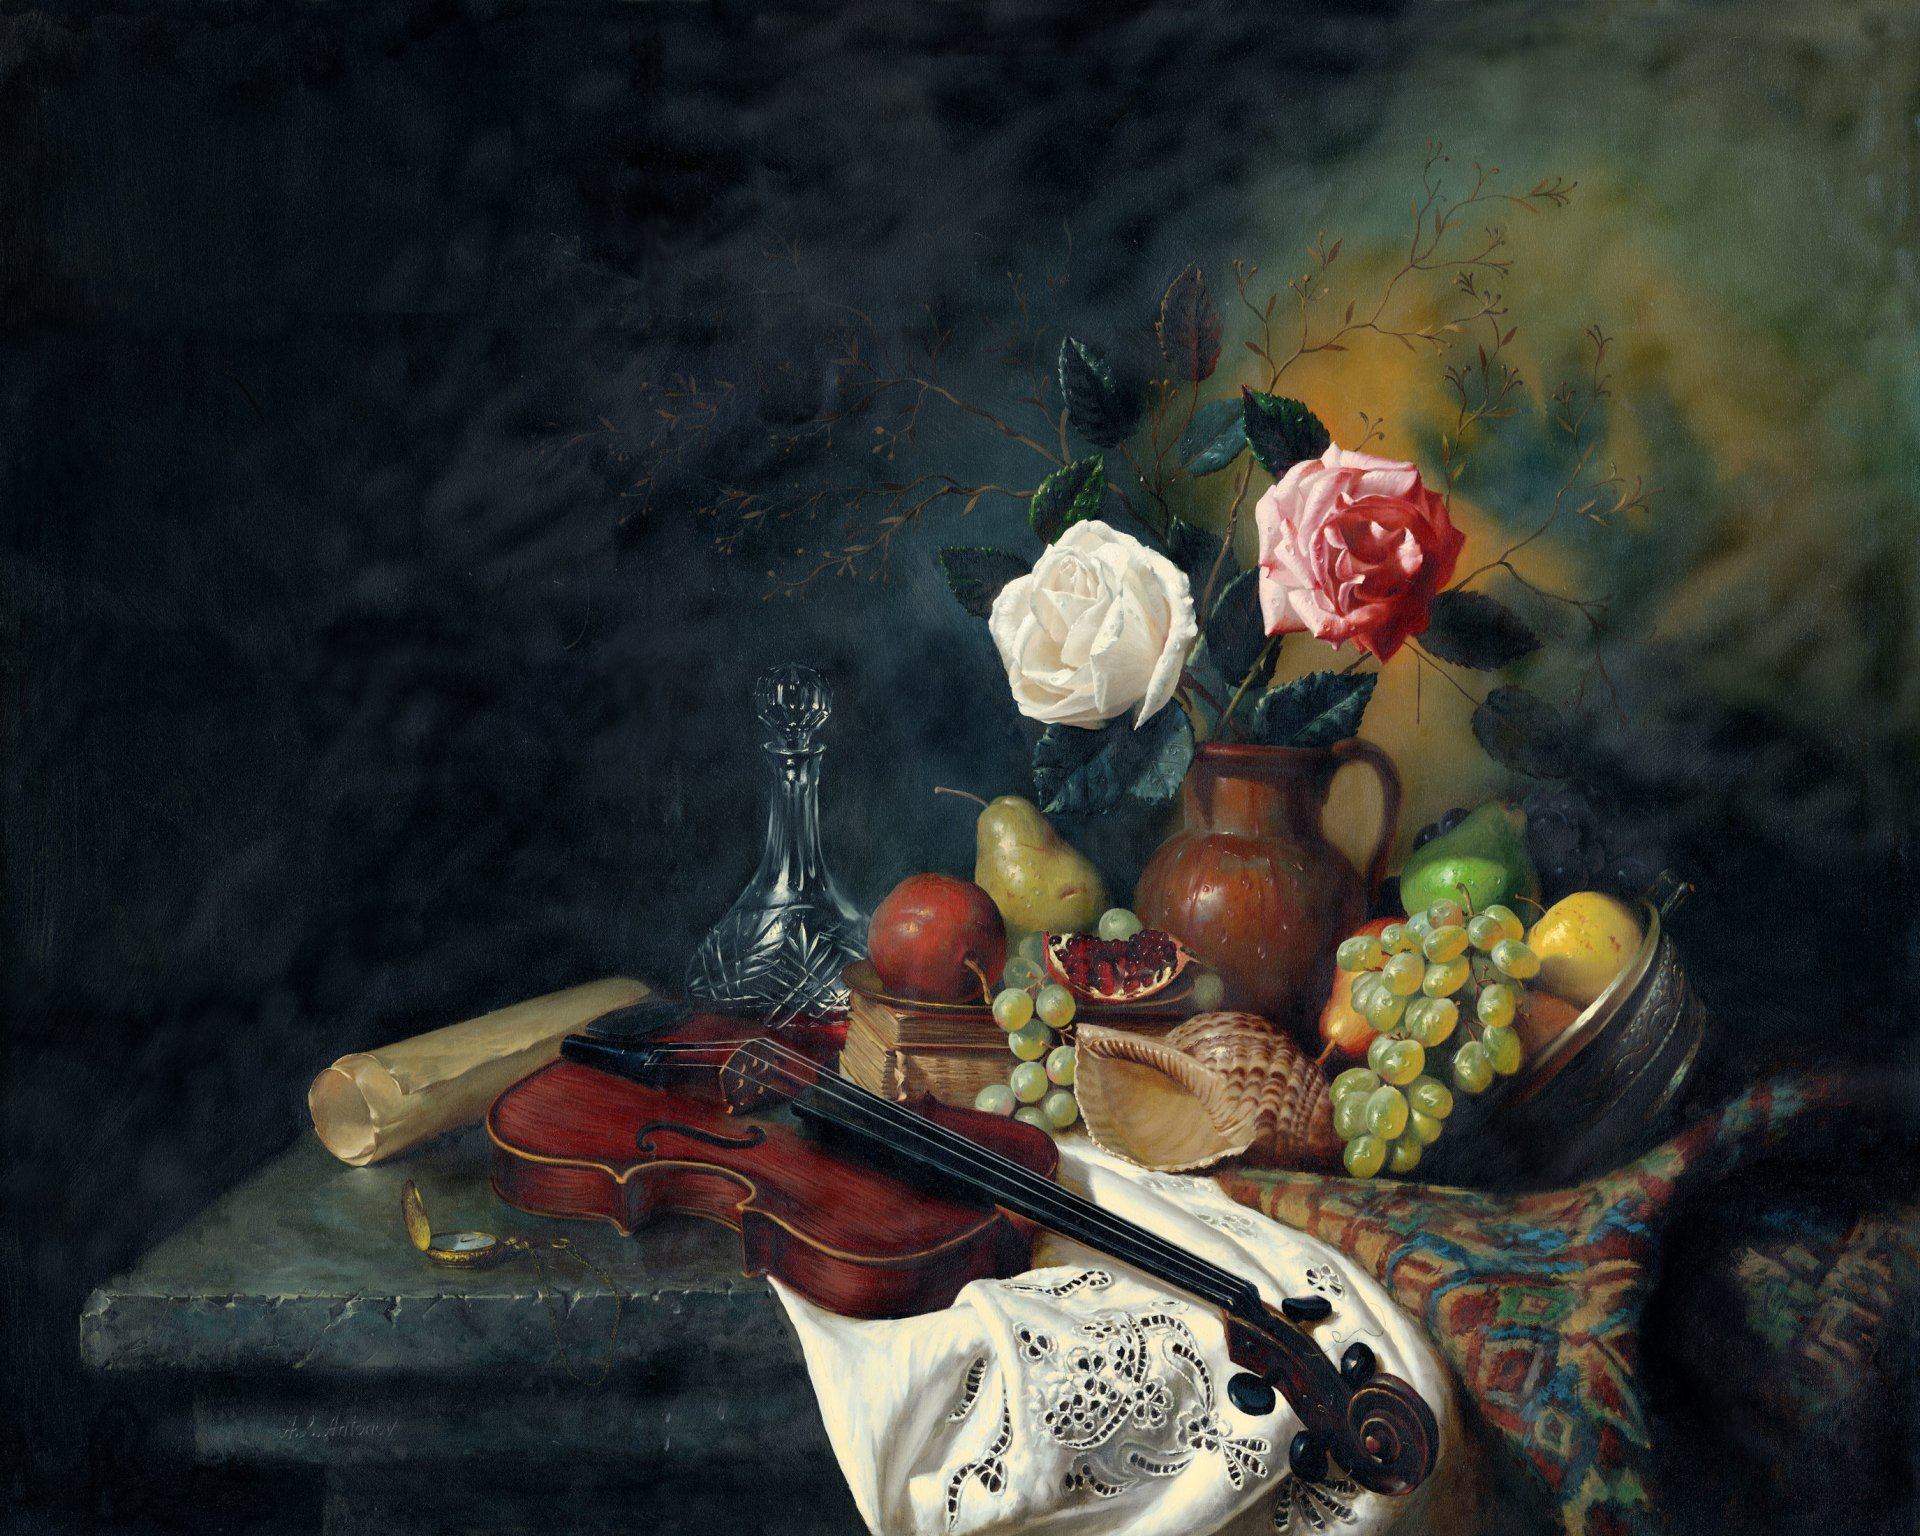 Artistic - Painting  Artistic Still Life Flower Fruit Vase Colorful Violin Wallpaper